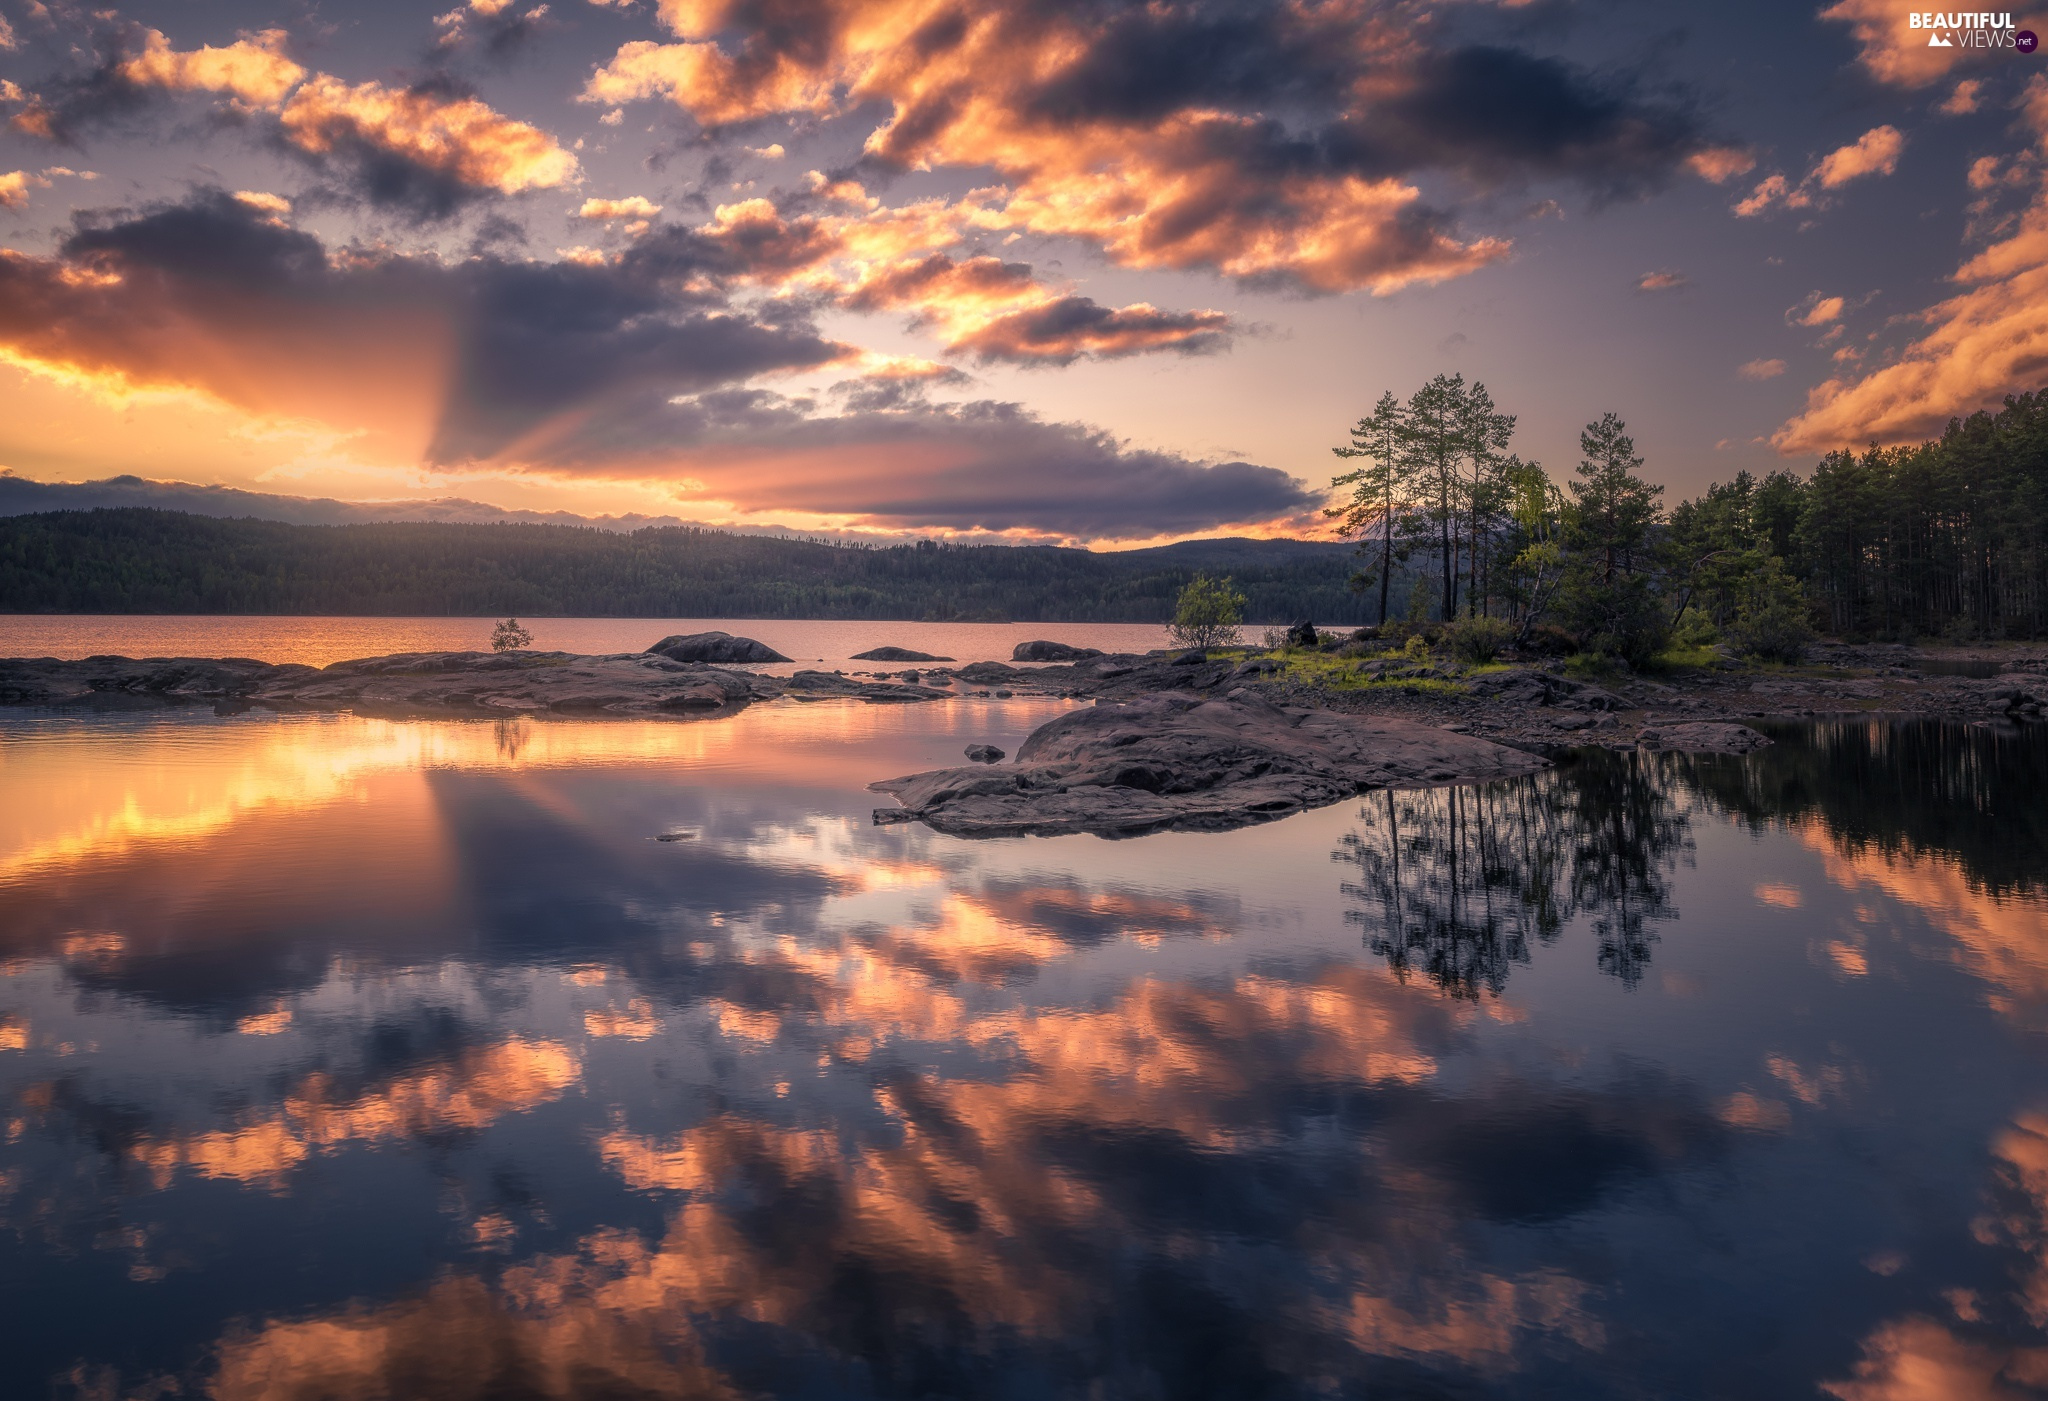 Great Sunsets, lake, viewes, rocks, trees, clouds